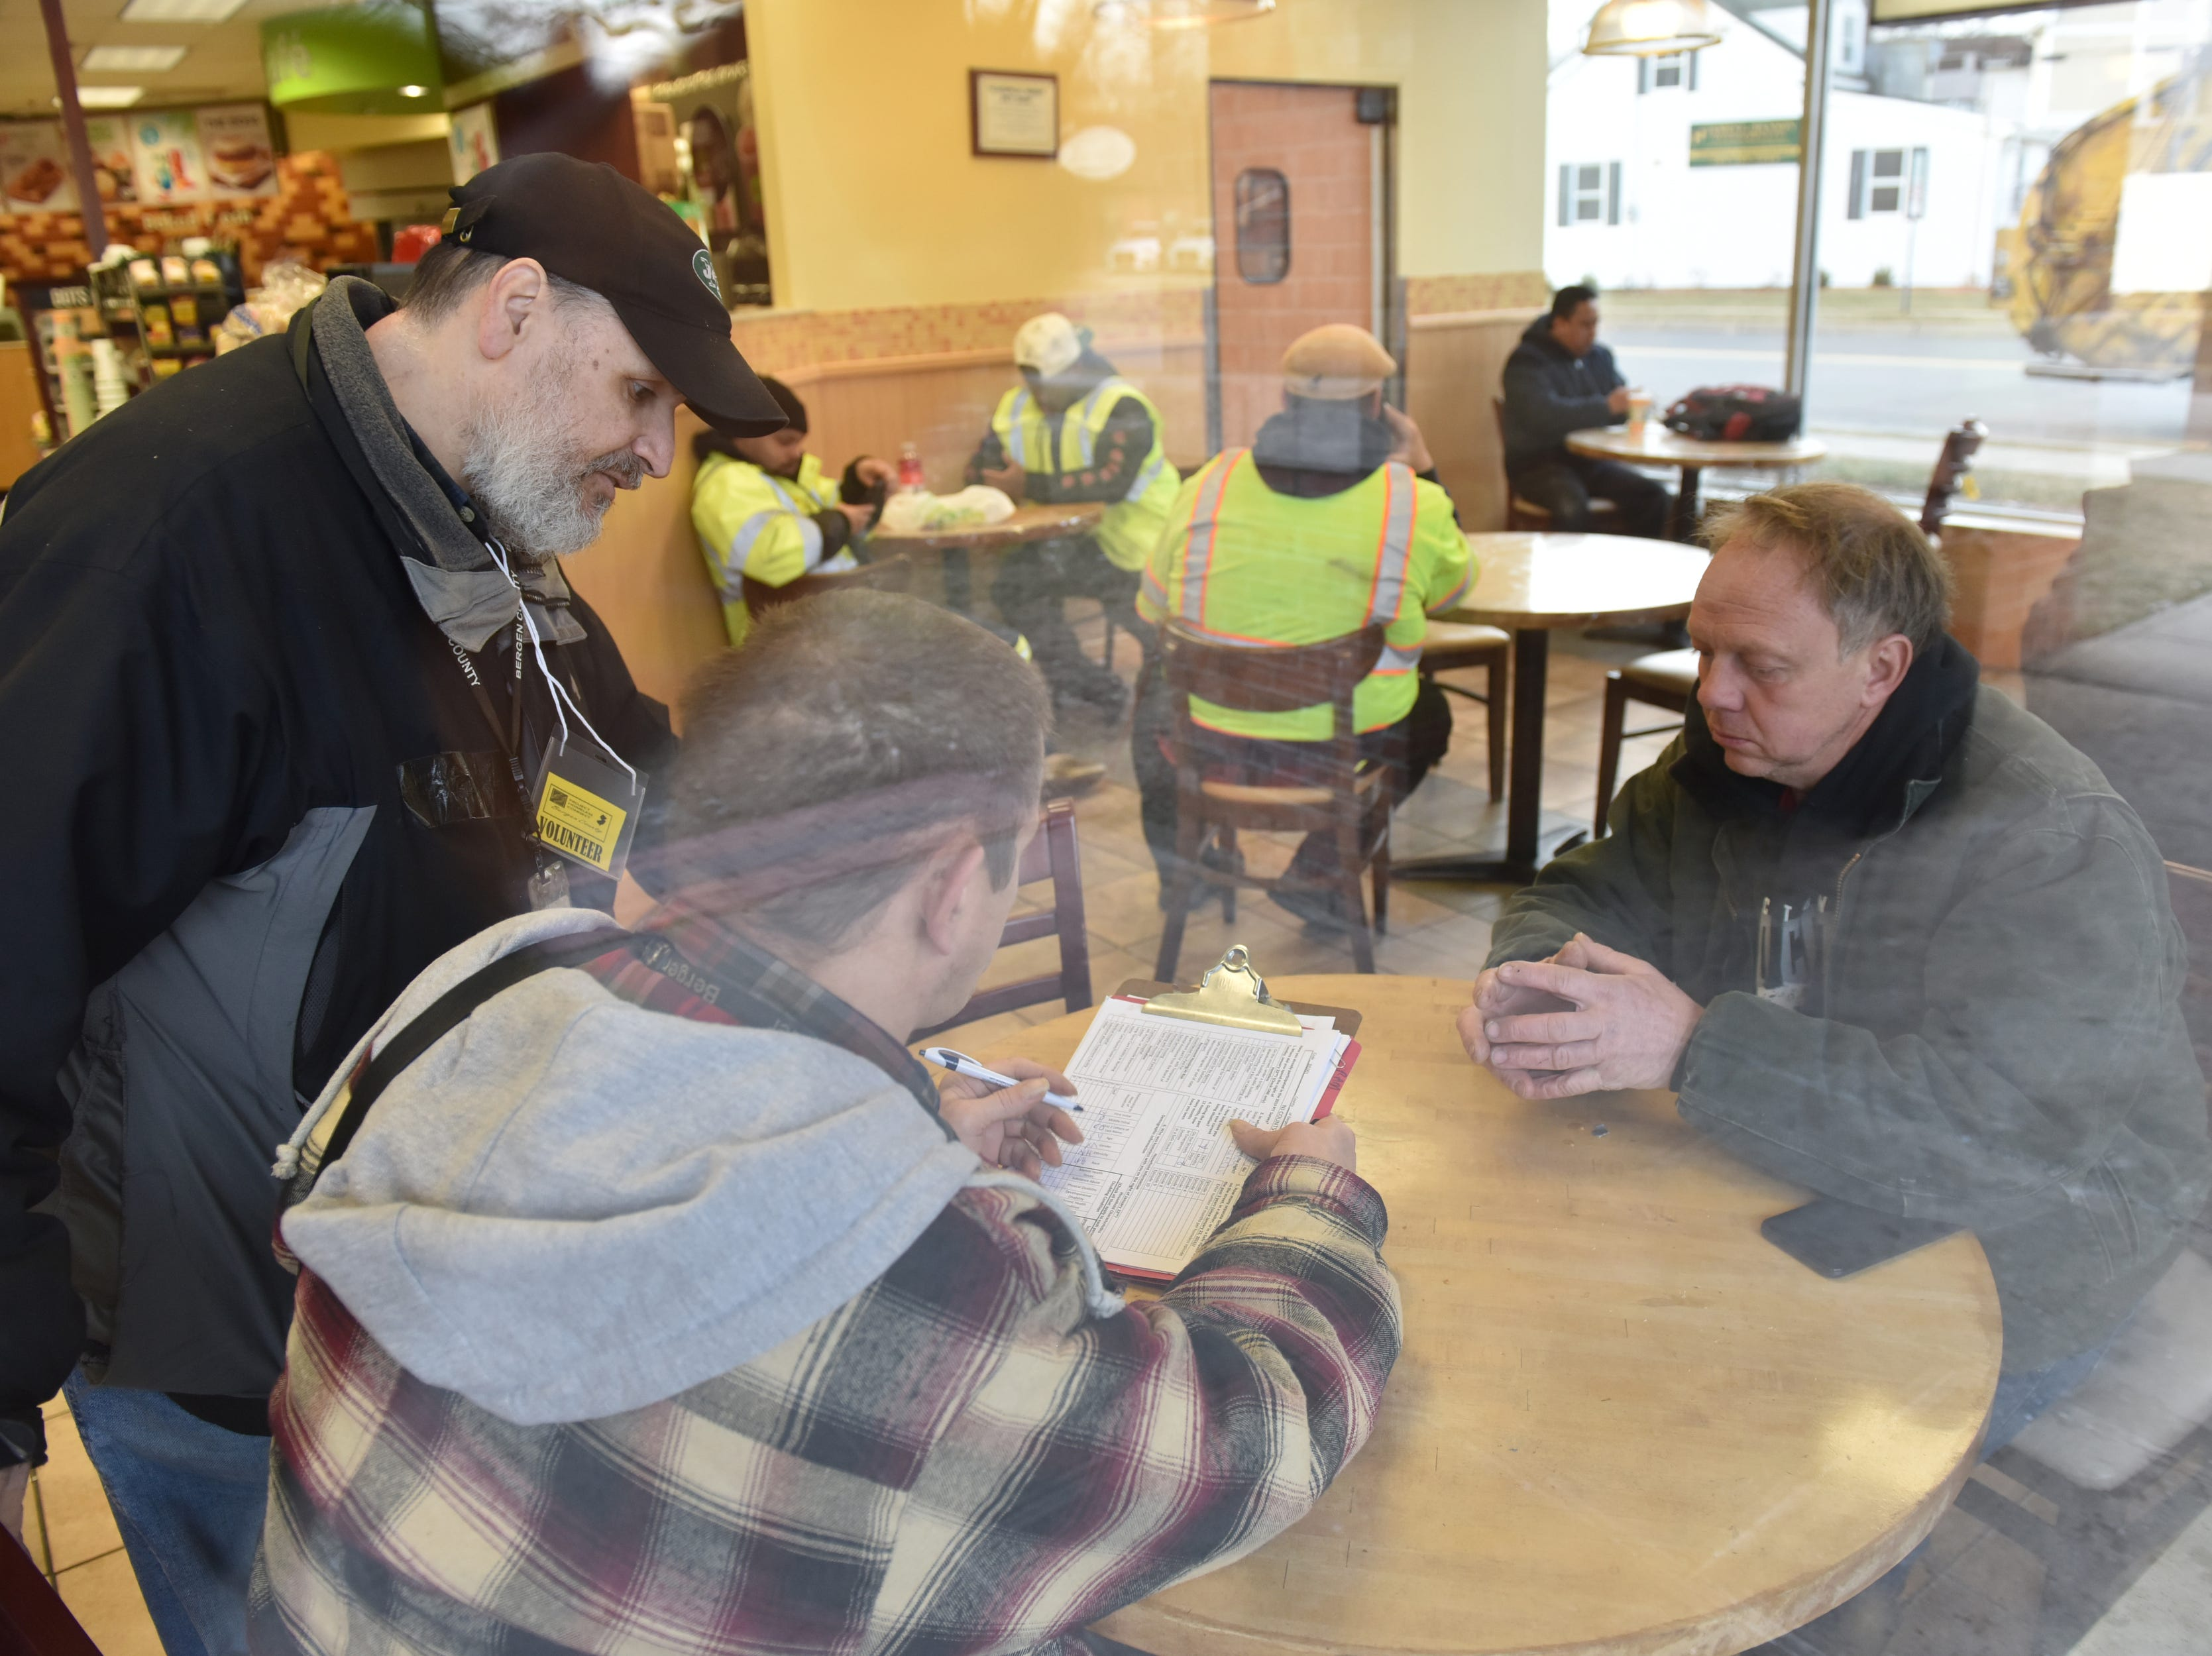 From left, Rocco Mazza, of Bergen County Human Services Center, and Paul Nickels, a volunteer, conduct a survey of Glenn Couzzo in Hackensack, at a QuickChek on Wednesday January 23, 2019. Couzzo and a friend slept in his car at the QuickChek parking lot.